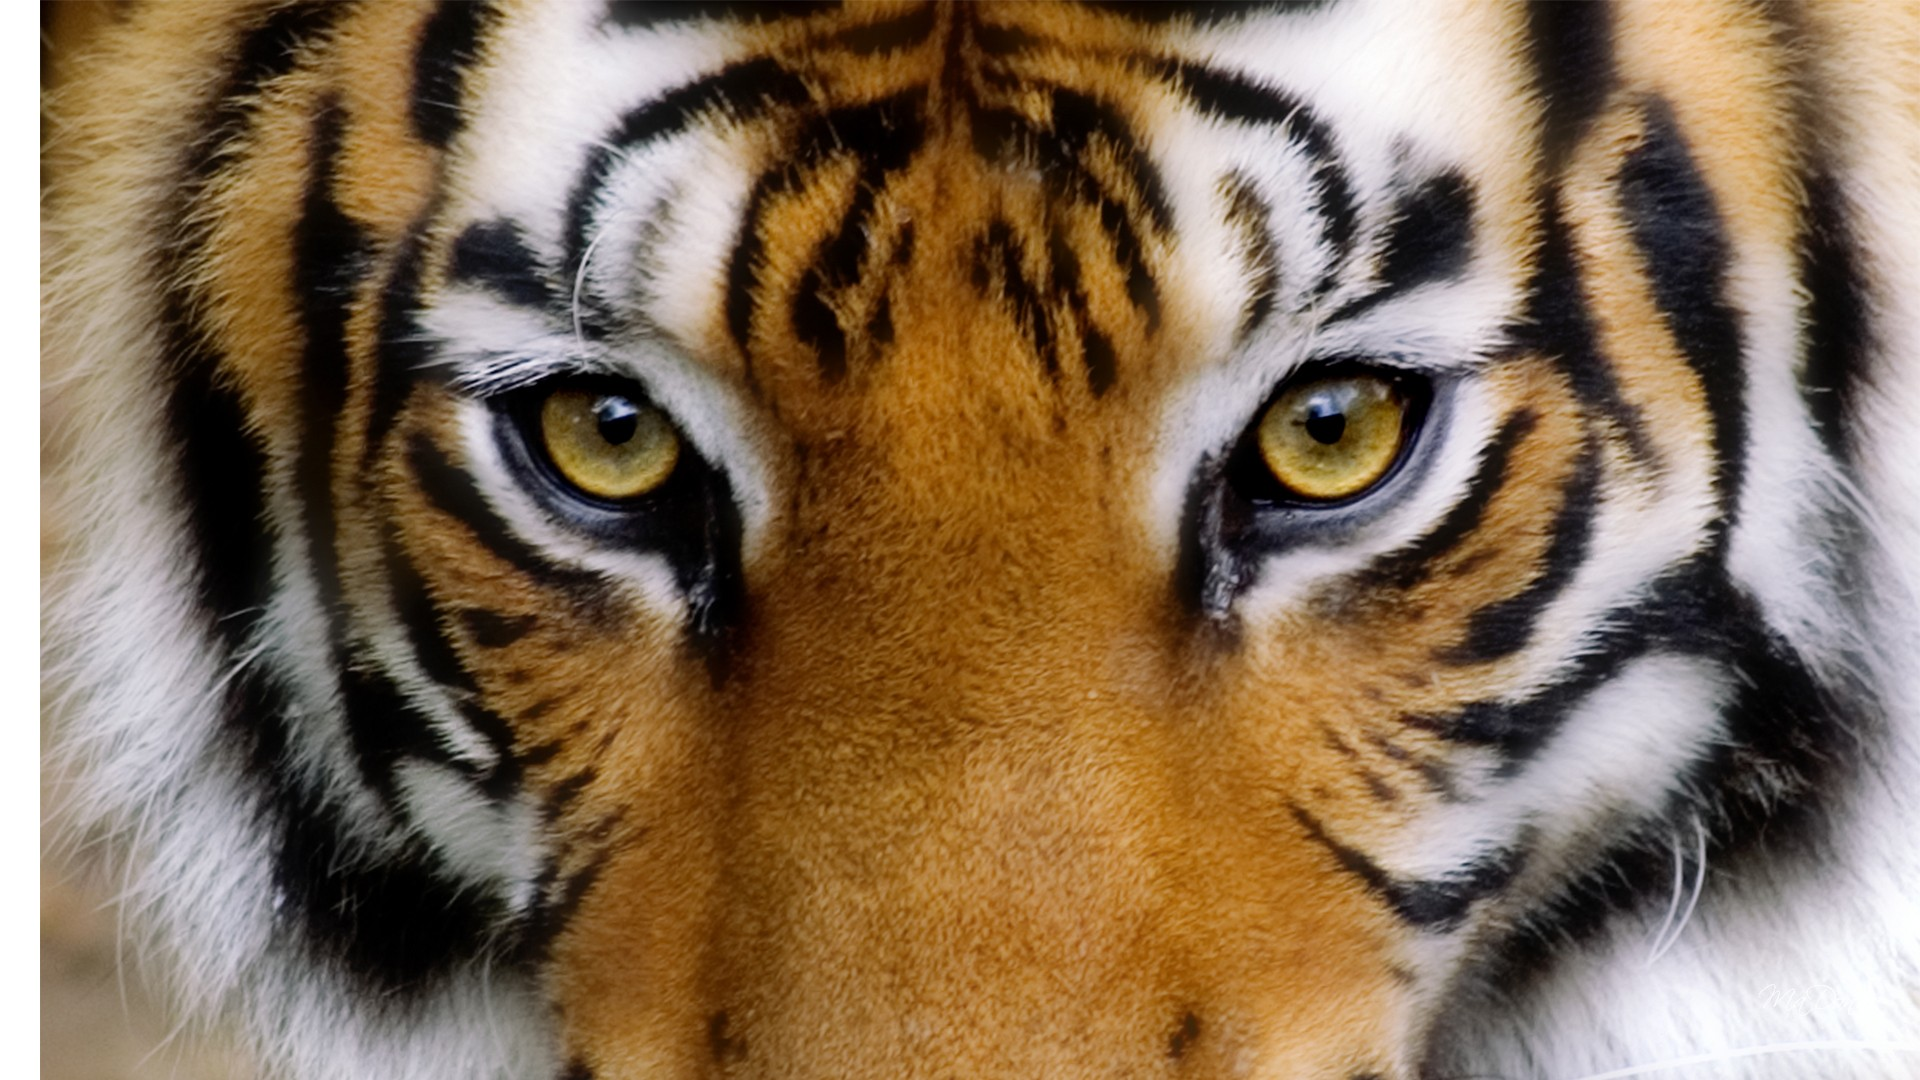 Tiger Eyes Wallpaper